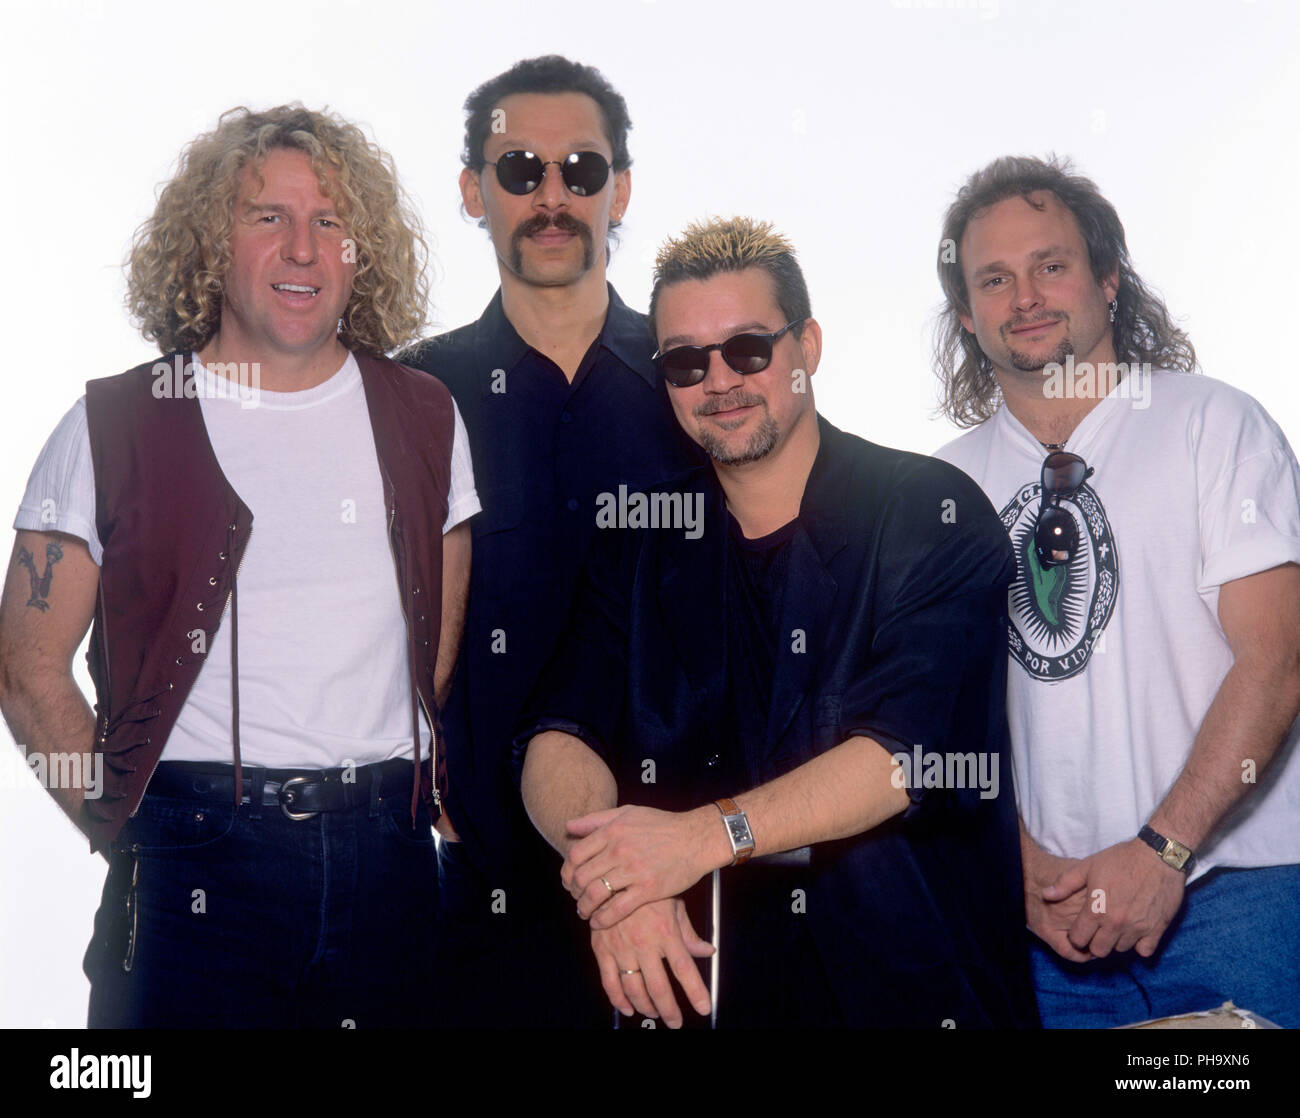 Van Halen V L Sammy Hagar Alex Van Halen Eddie Van Halen Michael Anthony On Im Juni 1995 In Ma Nchen Munich Usage Worldwide Stock Photo Alamy